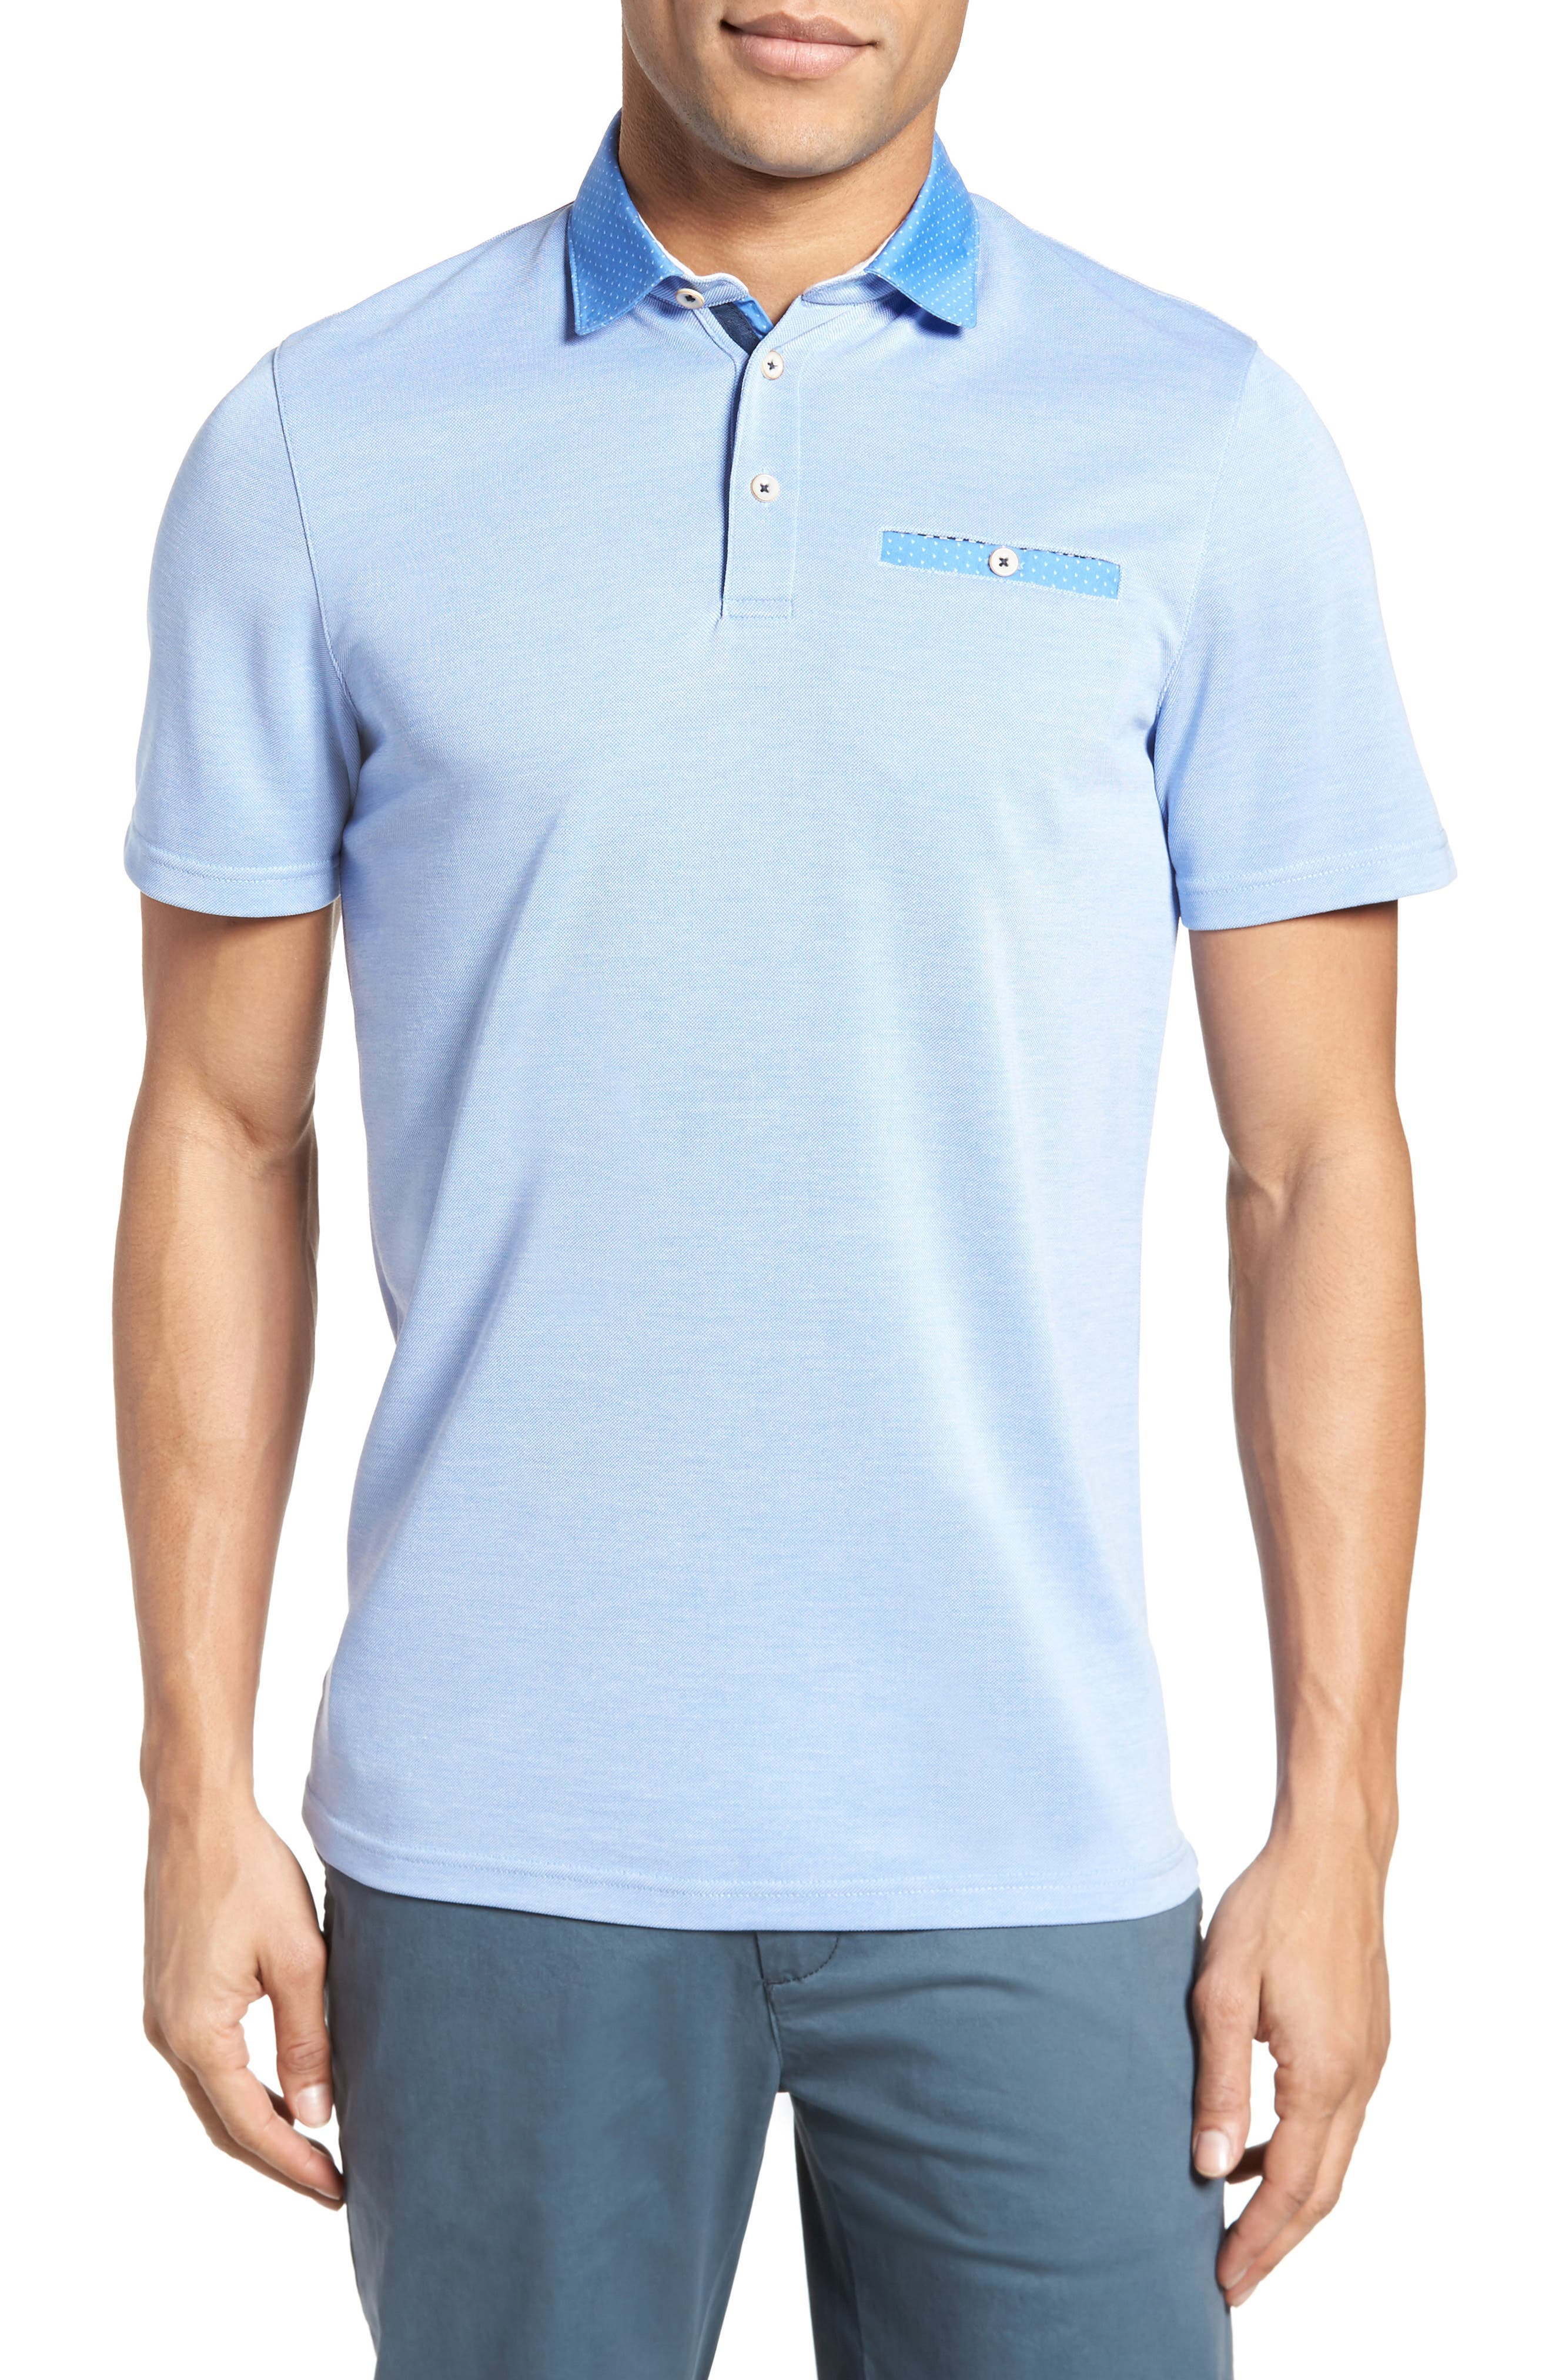 Mikeytt Trim Fit Polo,                             Main thumbnail 1, color,                             Bright Blue